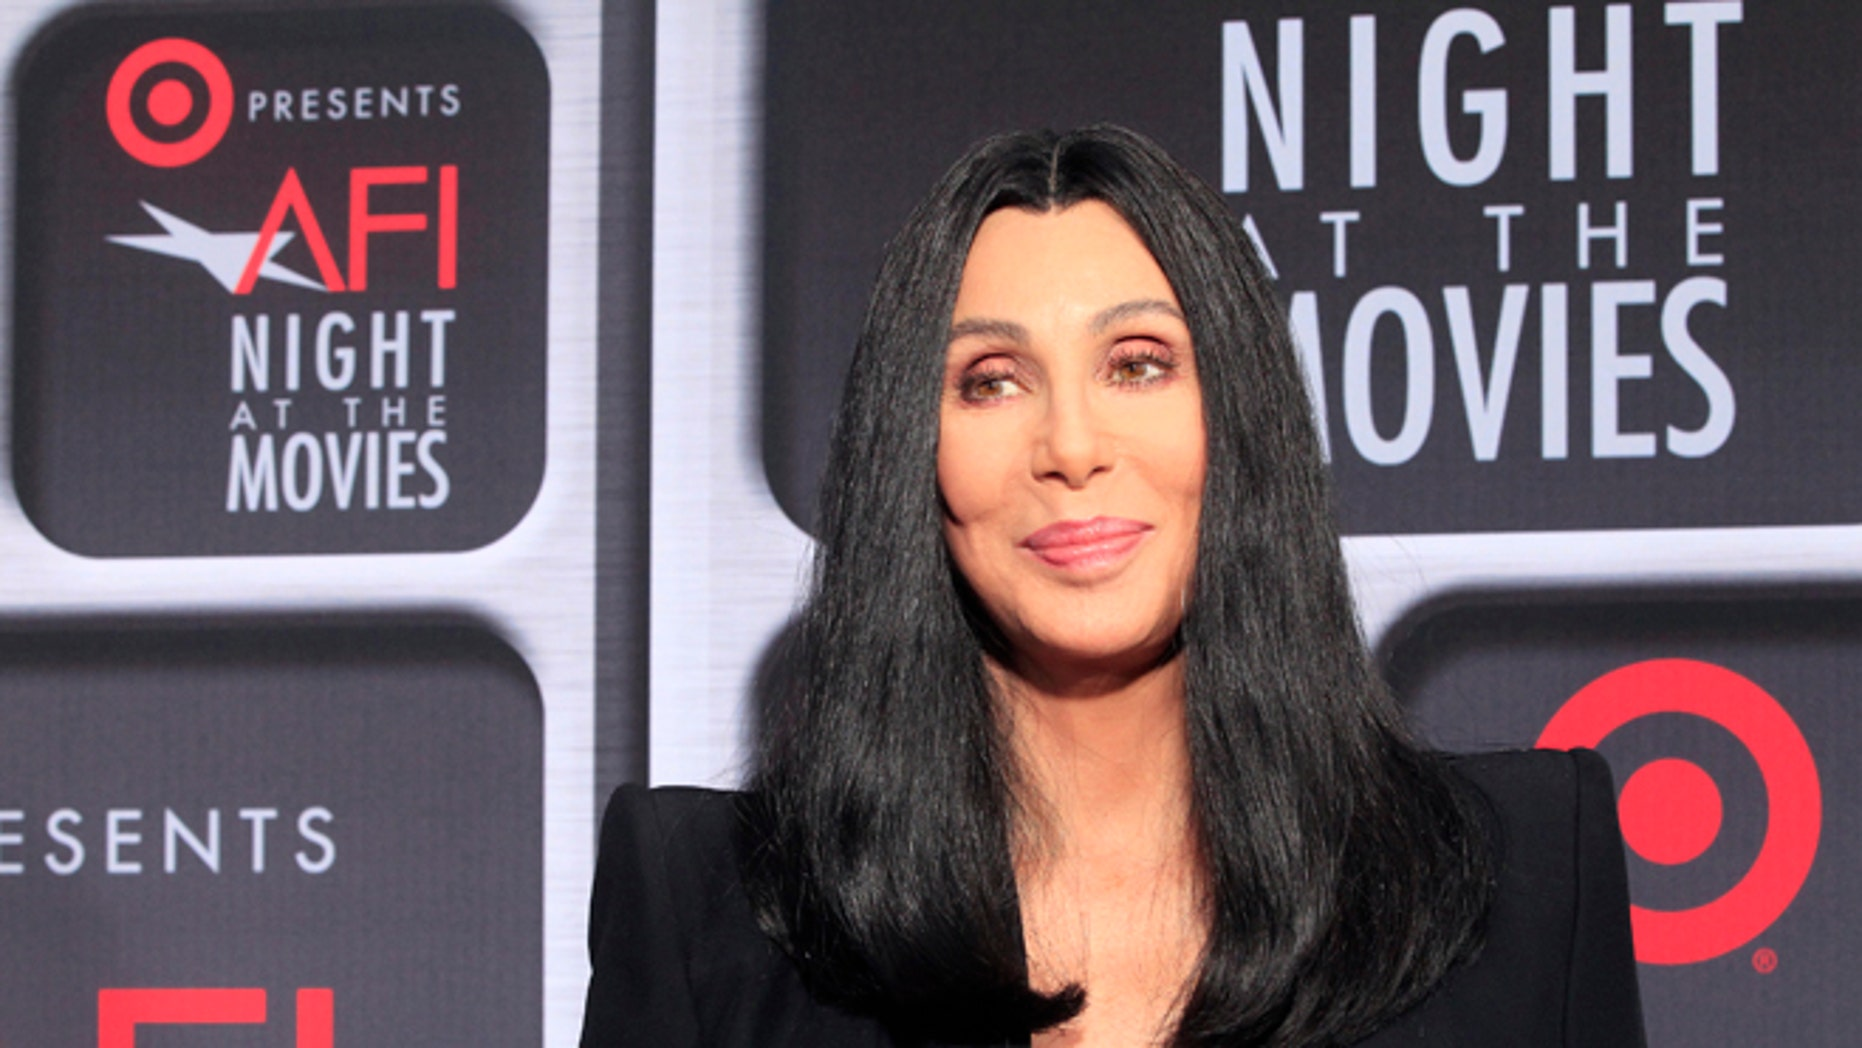 "Actress Cher arrives at Target Presents AFI Night at the Movies in Hollywood April 24, 2013. The event for fans celebrates classic films and Cher introduced her 1987 film ""Moonstruck.""         REUTERS/Fred Prouser (UNITED STATES - Tags: ENTERTAINMENT HEADSHOT) - RTXYZ2F"